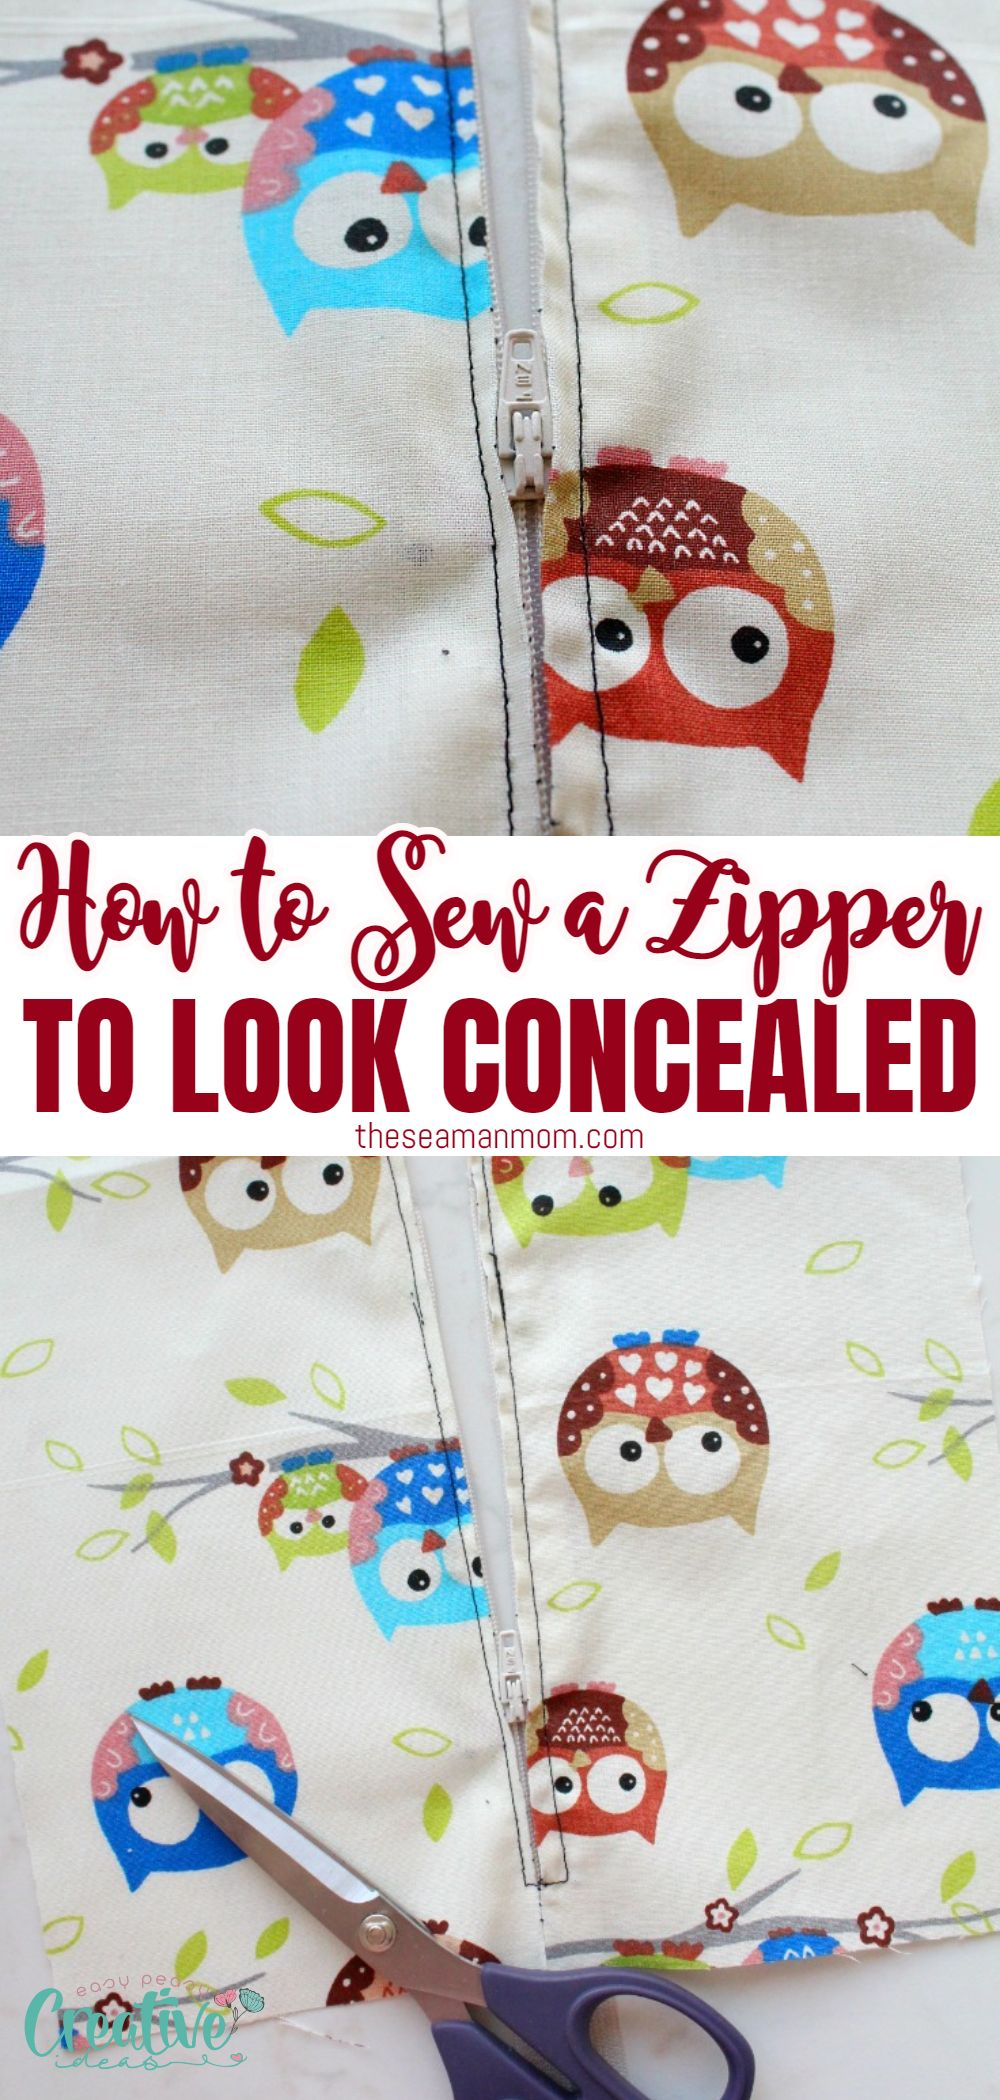 The thought of sewing a zipper into a skirt intimidates you? Learn how to sew a zipper on a skirt with this quick and easy technique! With this simple method, you'll be able to insert a concealed zip in any garment! via @petroneagu